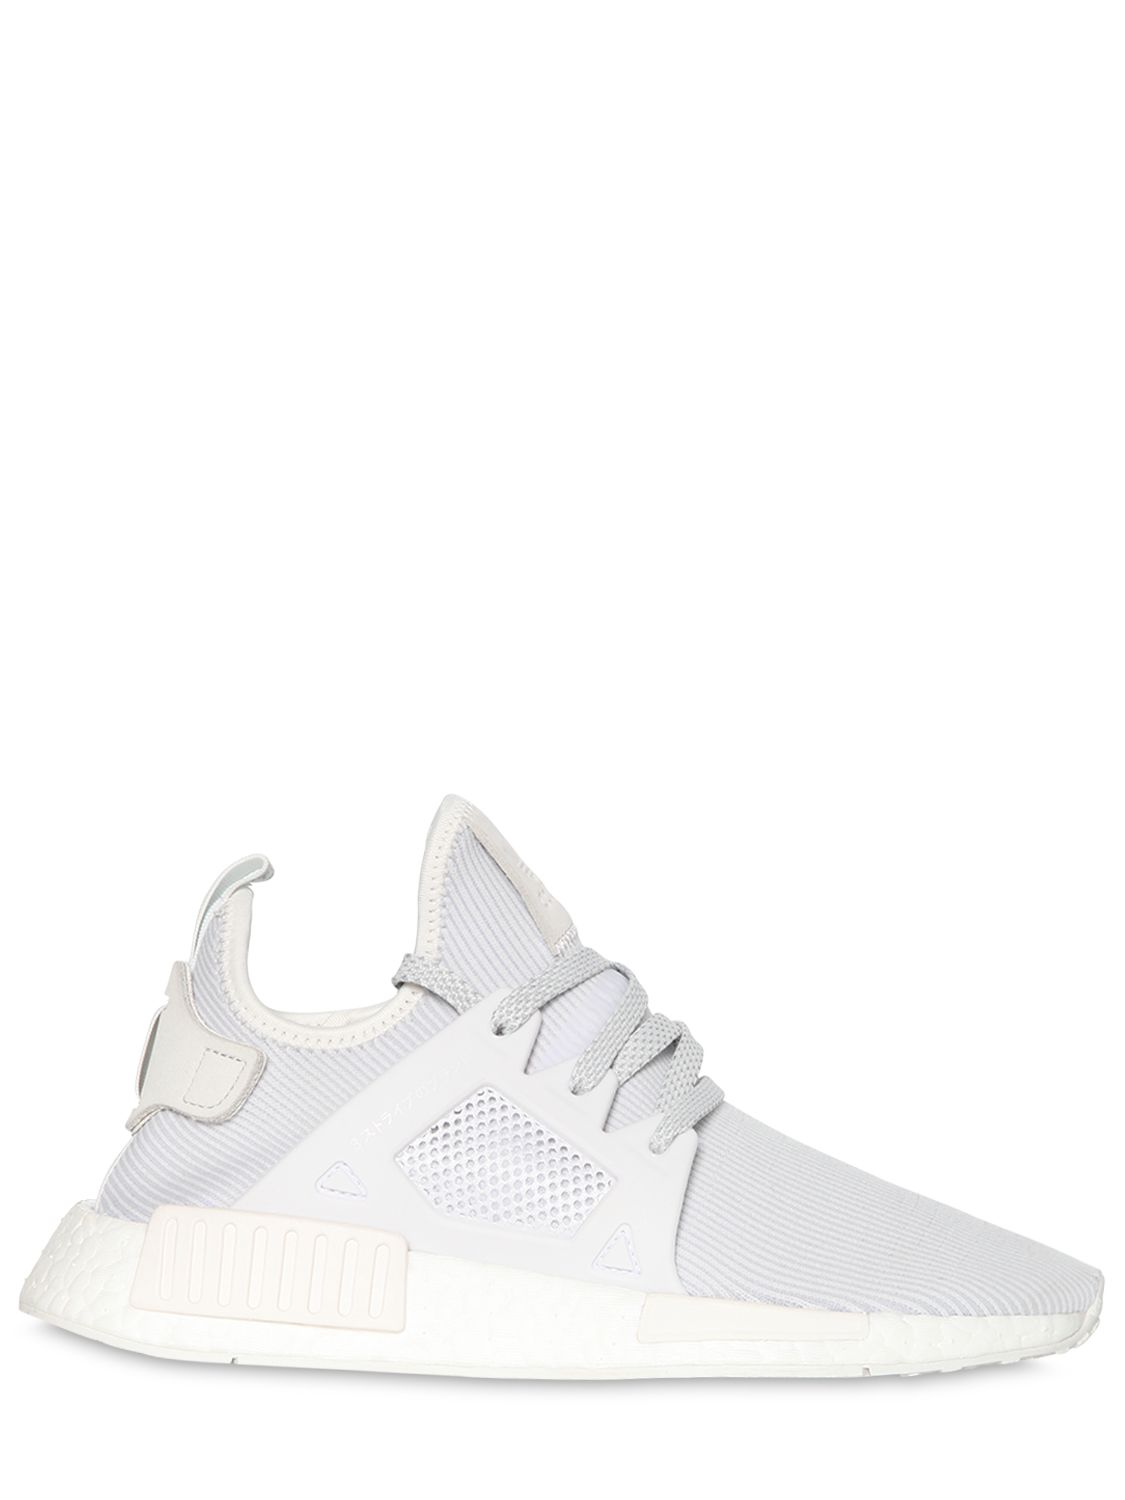 1125x1500 Adidas Originals Nmd Xr1 Knit Slip On Sneakers White Men Shoes